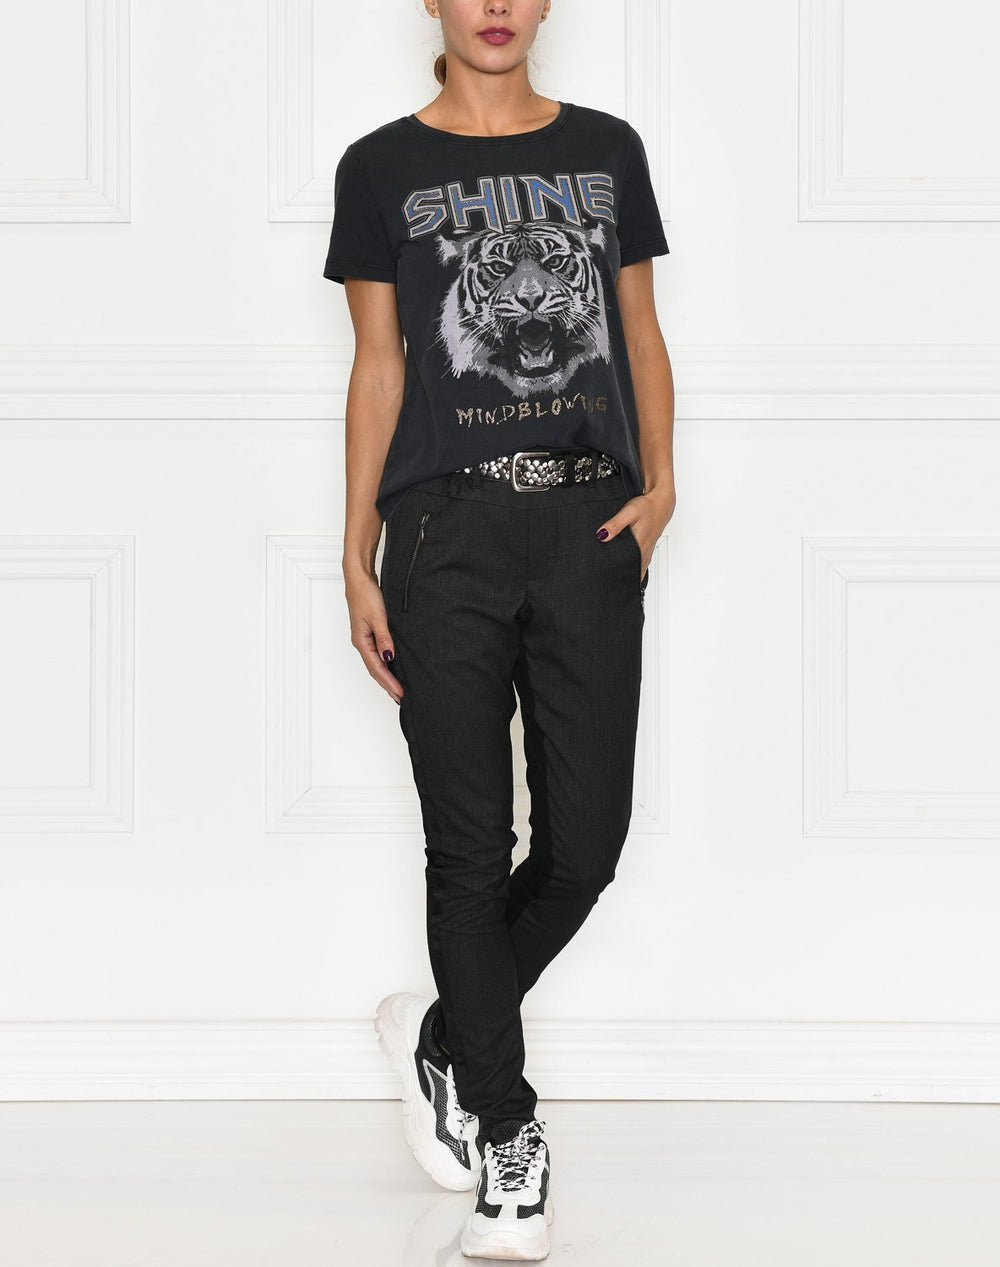 B.Young BYsanla t-shirt black - Online-Mode